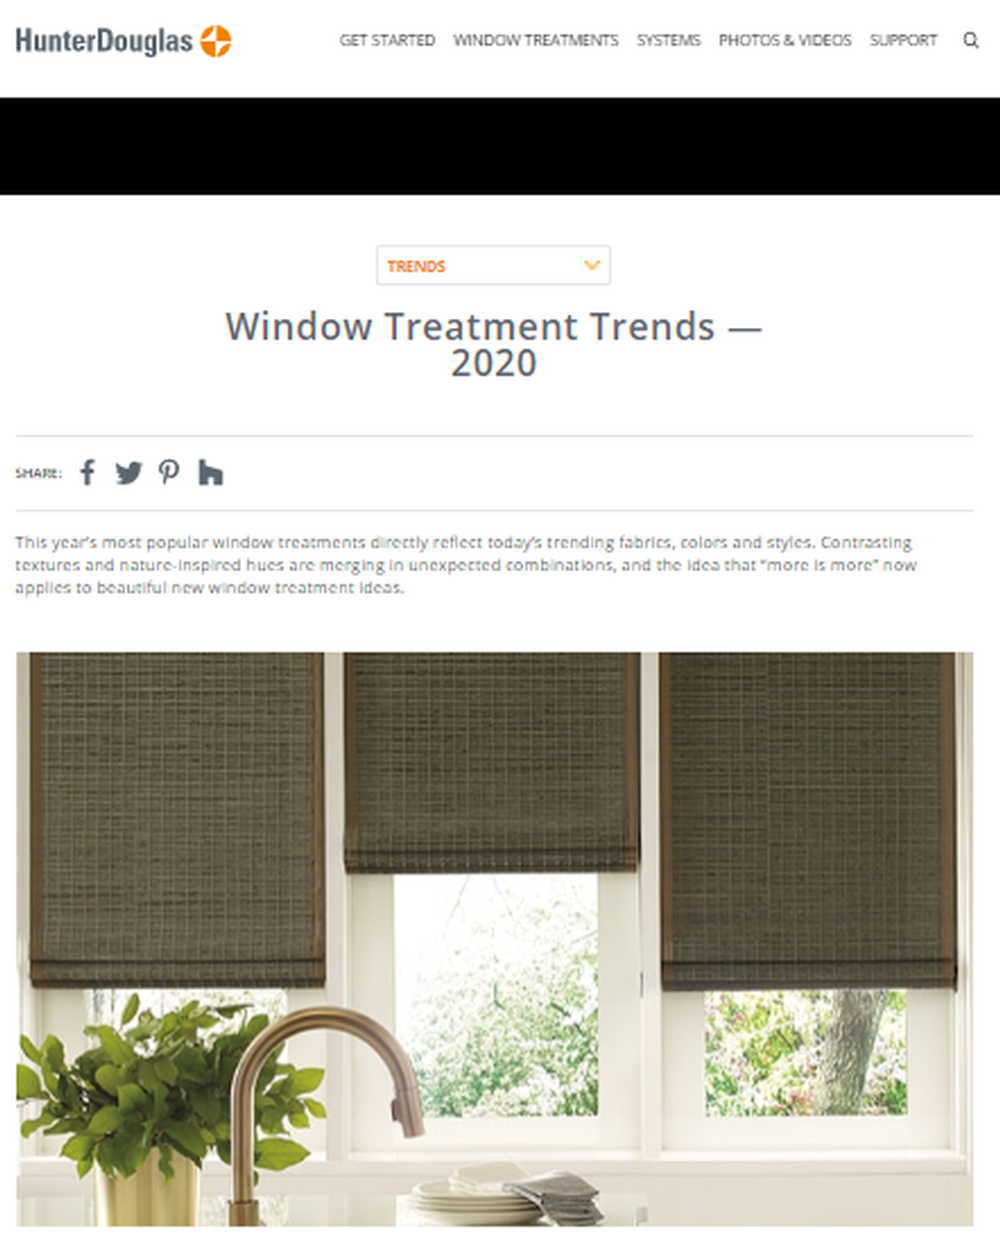 Window-Treatment-Trends-Styles-for-2020-Hunter-Douglas (1).png